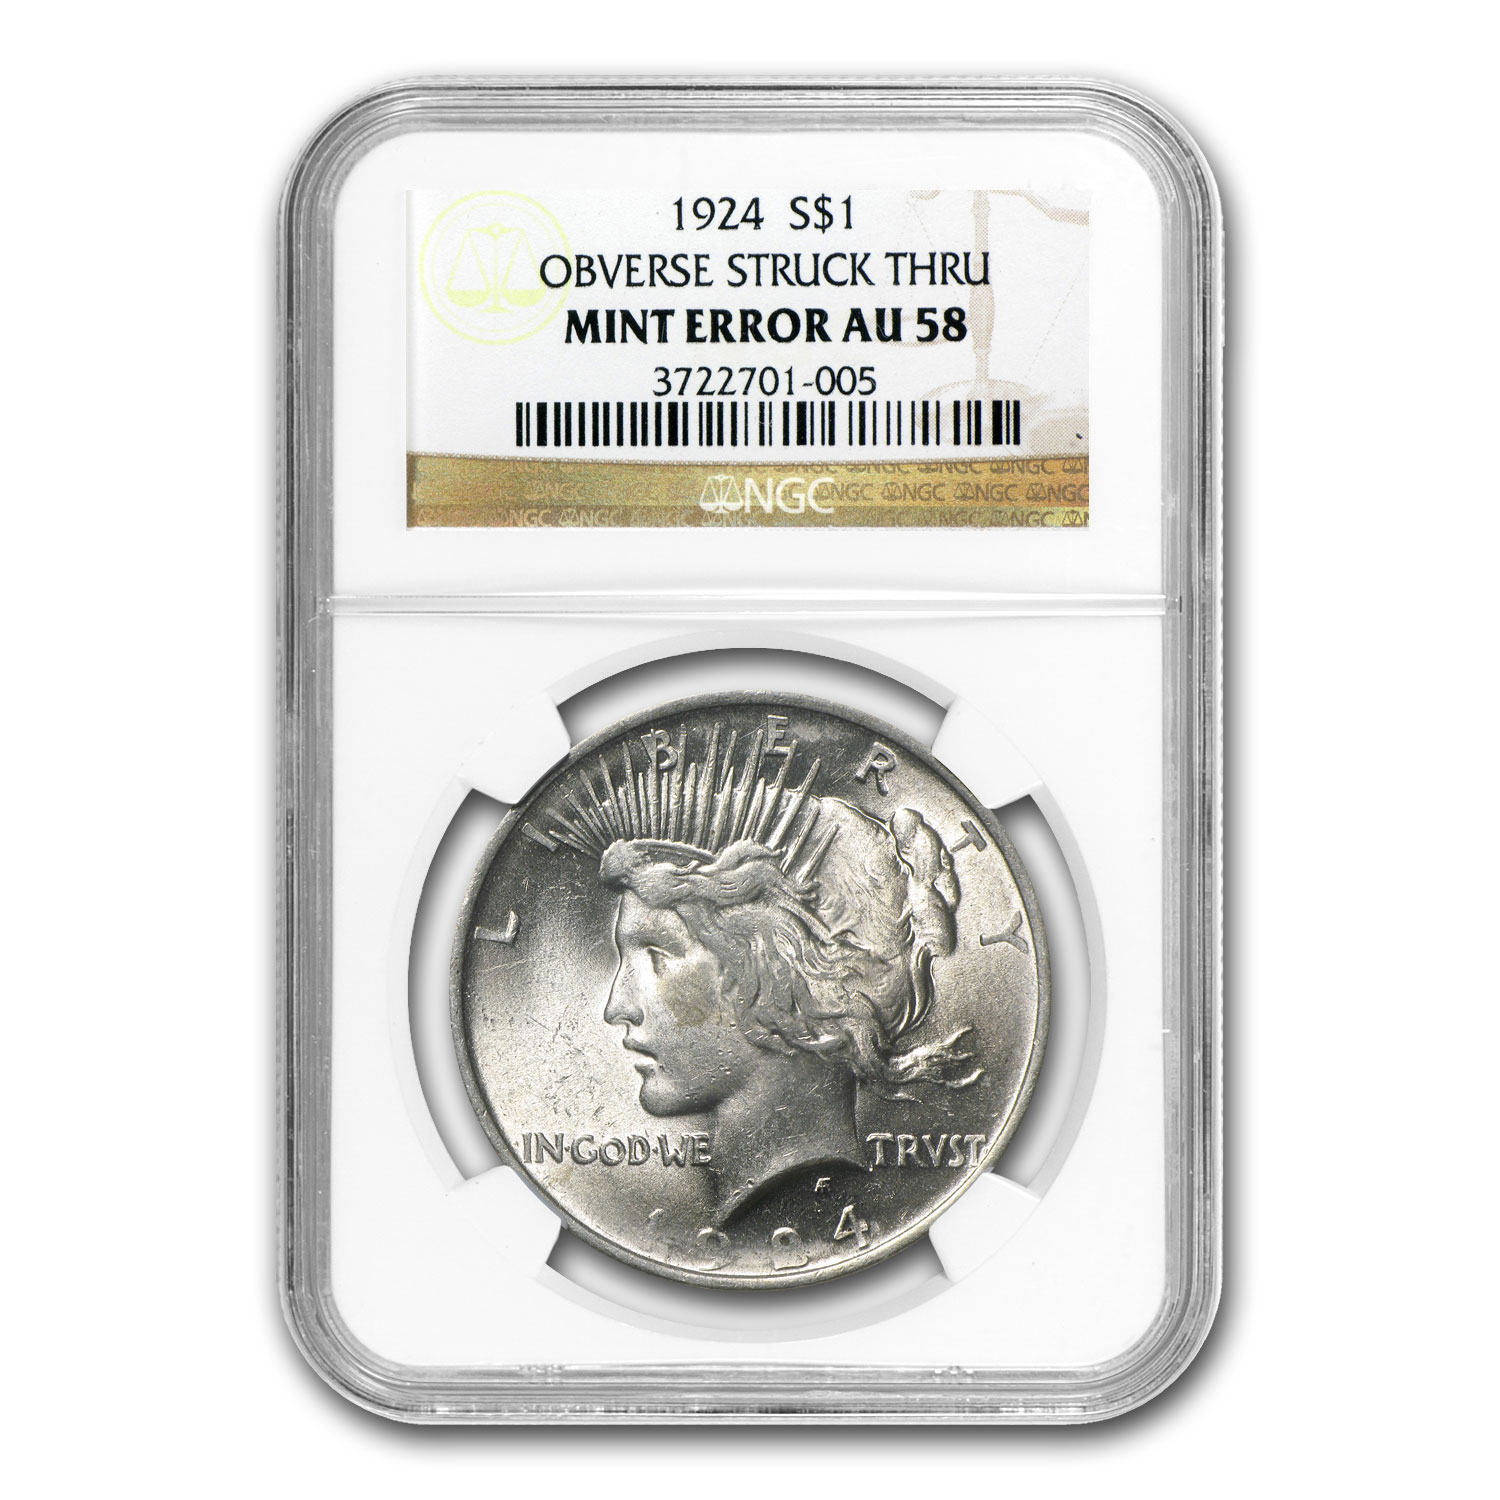 1924 Peace Dollar AU-58 NGC Struck Thru Mint Error